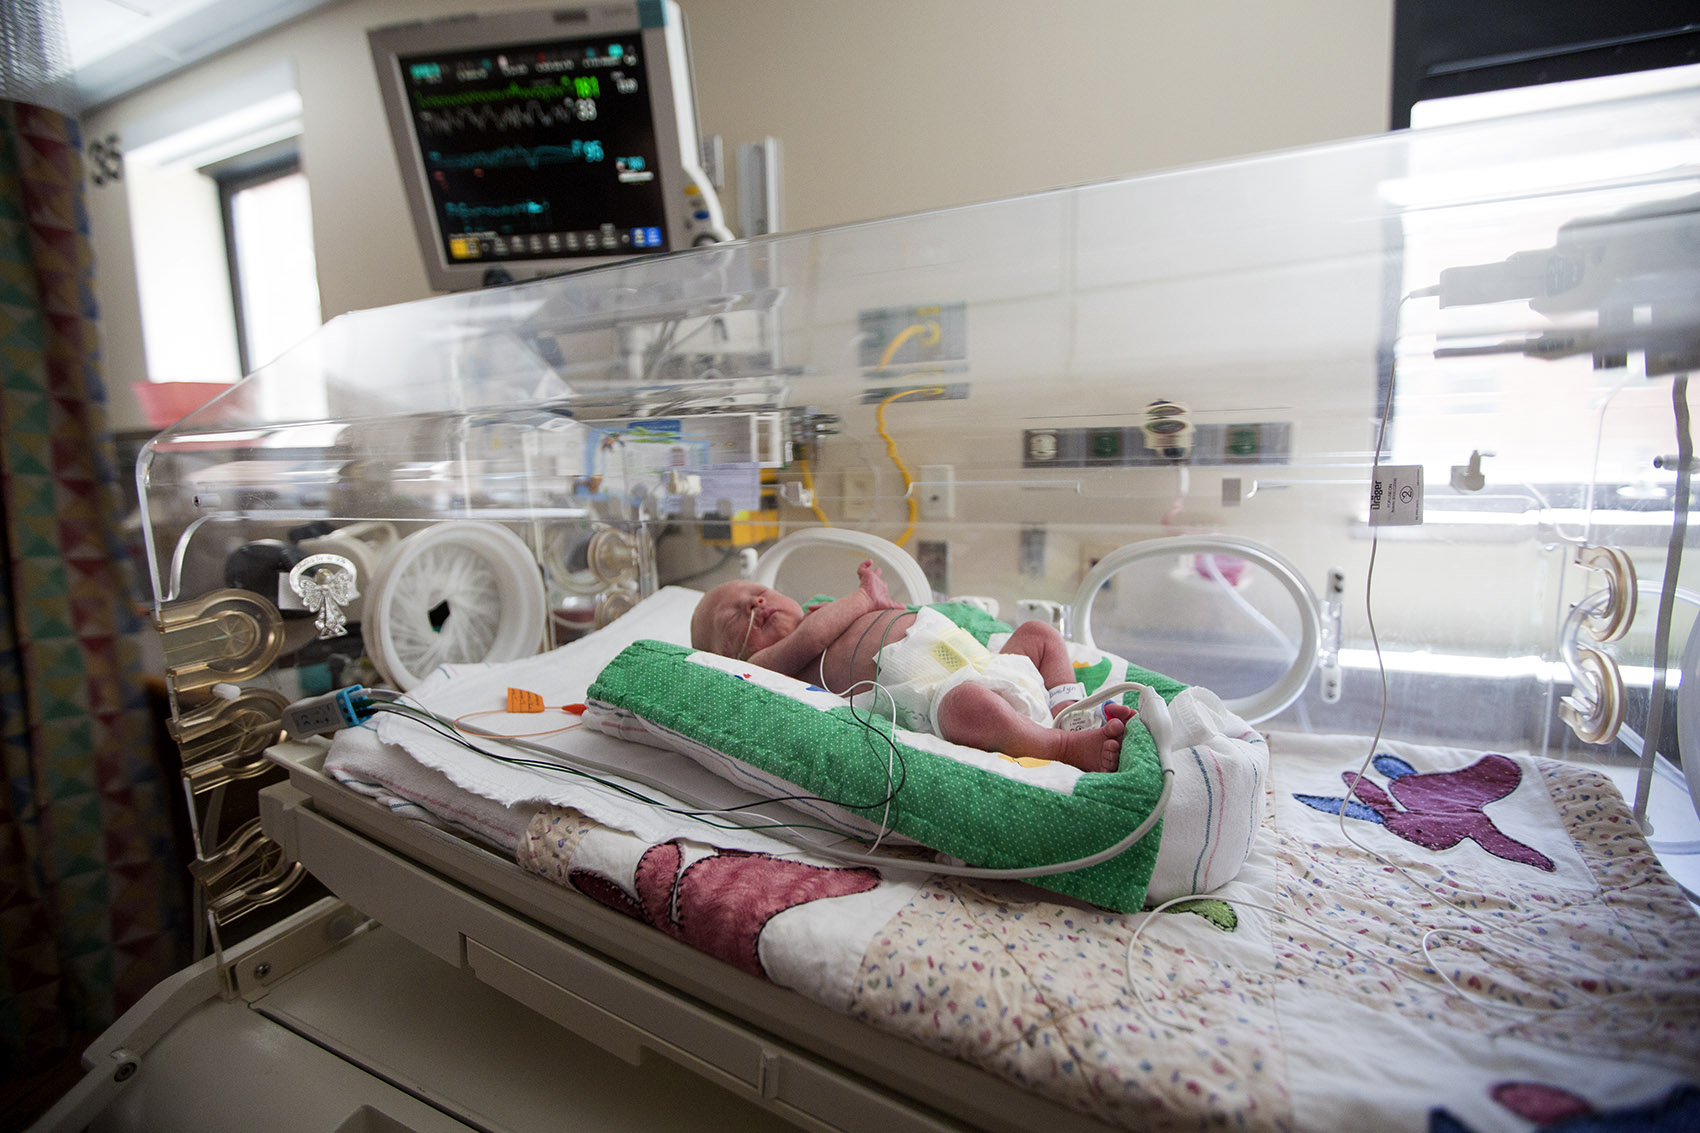 A baby rests in the Neonatal Intensive Care Unit at Tufts Medical Center after being born more than 11 weeks premature. (Jesse Costa/WBUR)